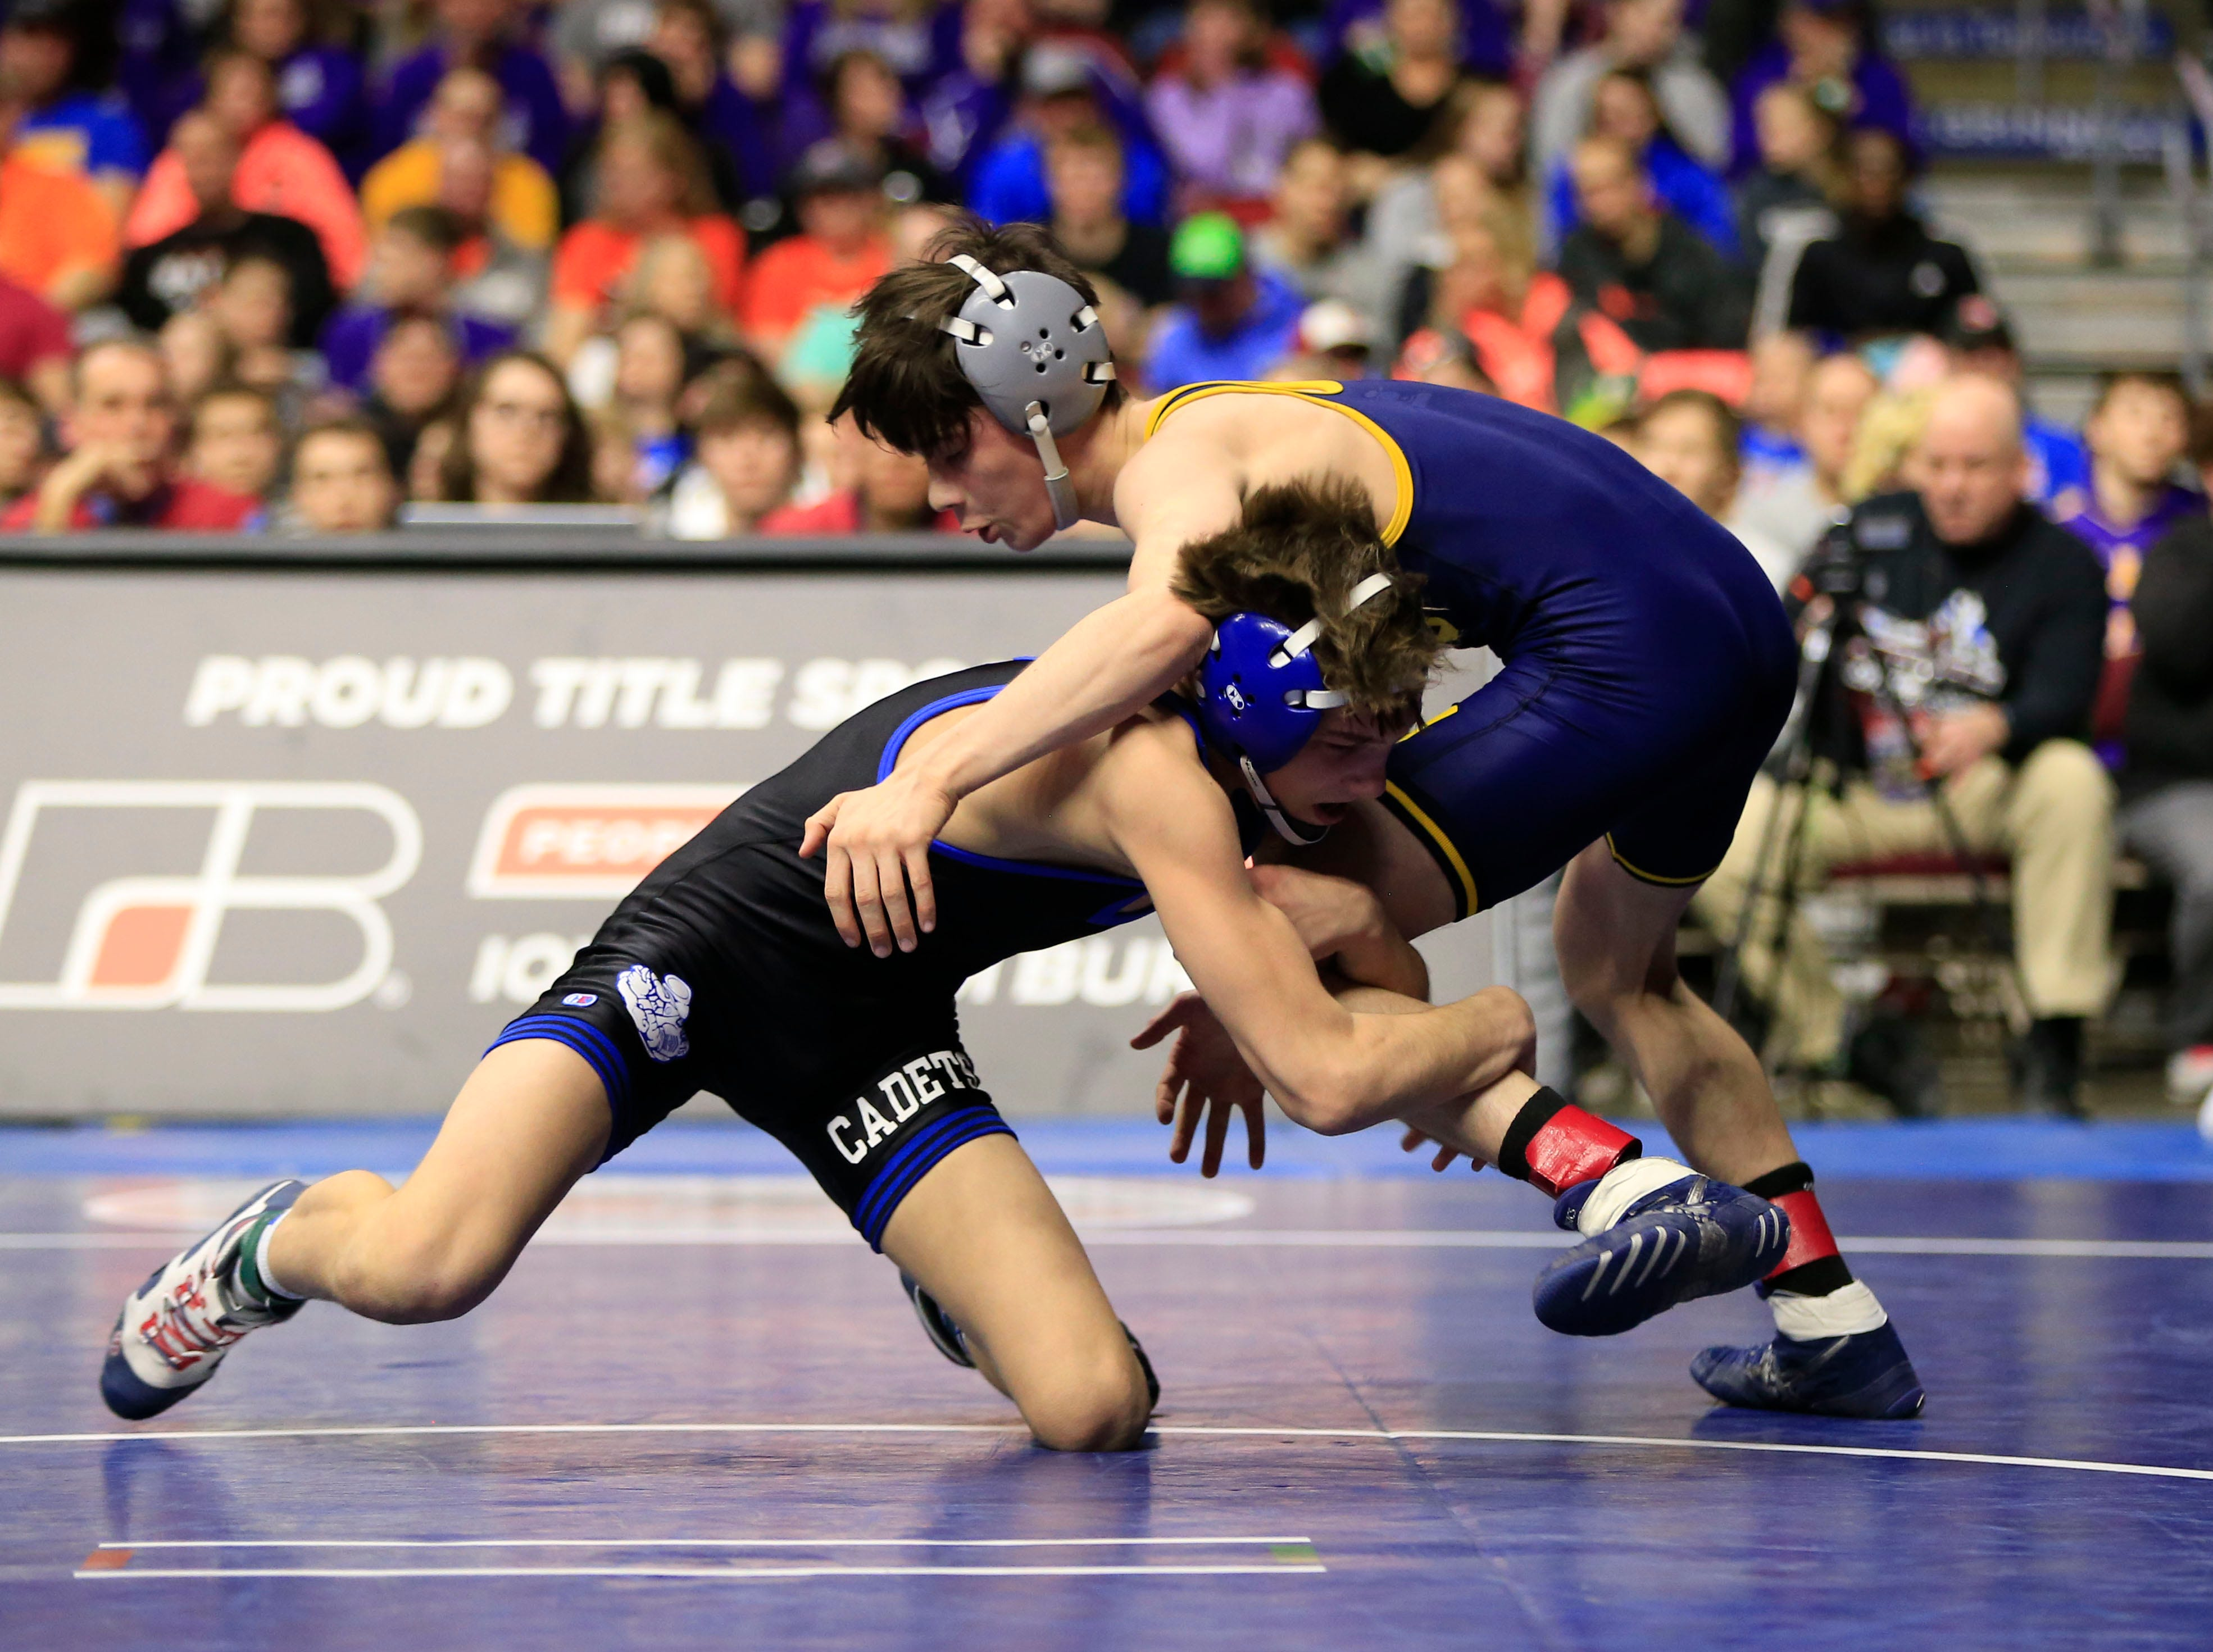 Carter Fousek of Crestwood, Cresco beats Blaine Frazier of Notre Dame, Burlington for the 2A state championship at 106 Saturday, Feb. 16, 2019.